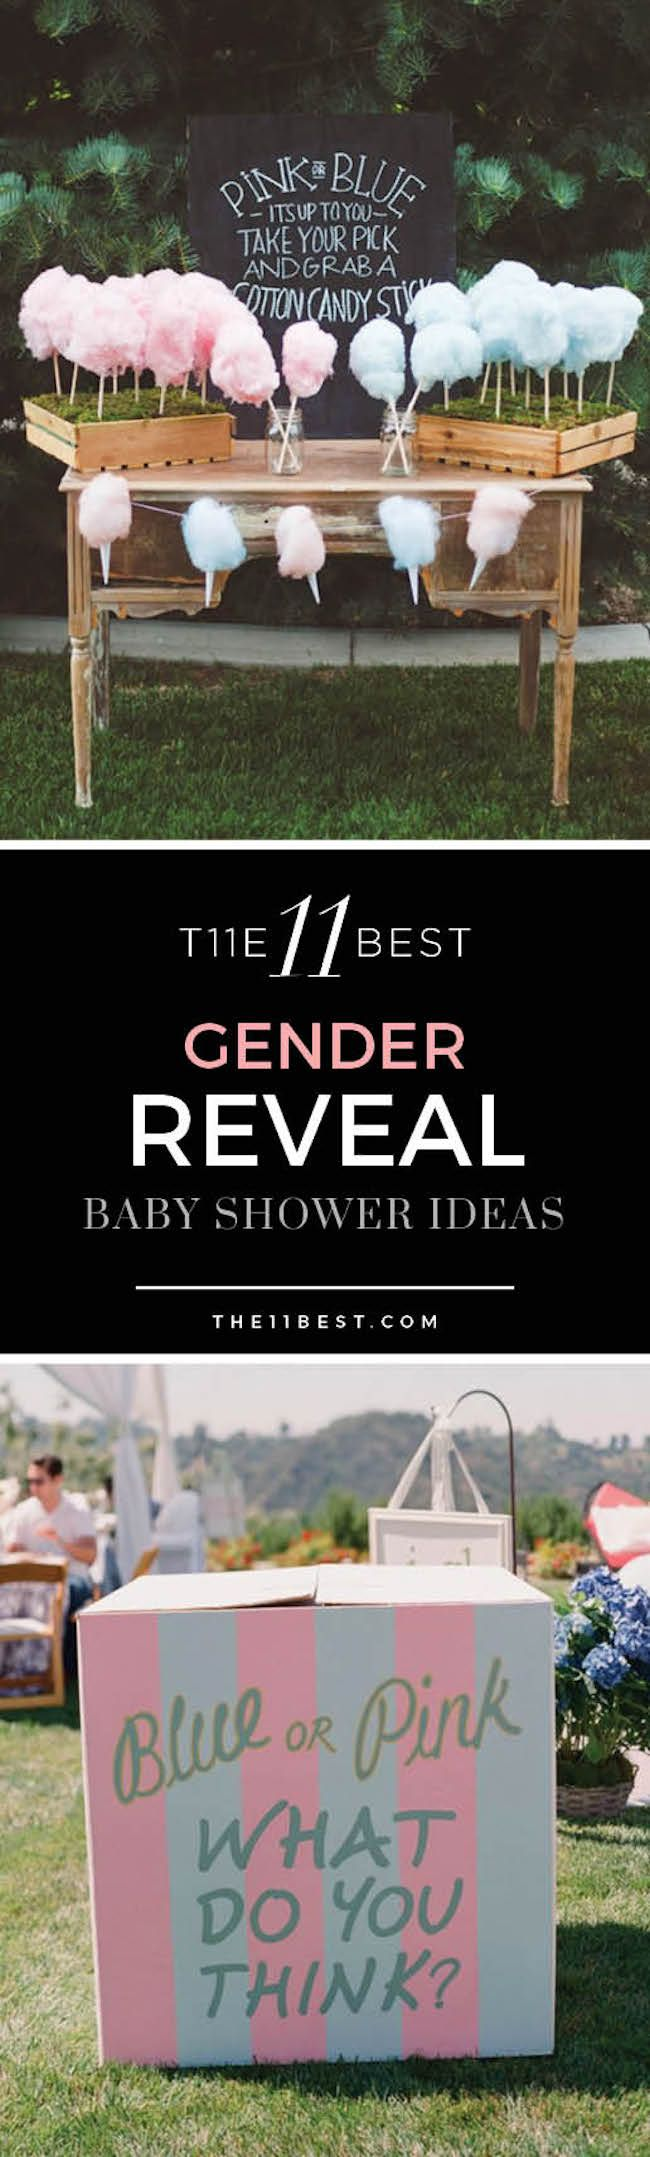 The BEST Gender Reveal Party Ideas